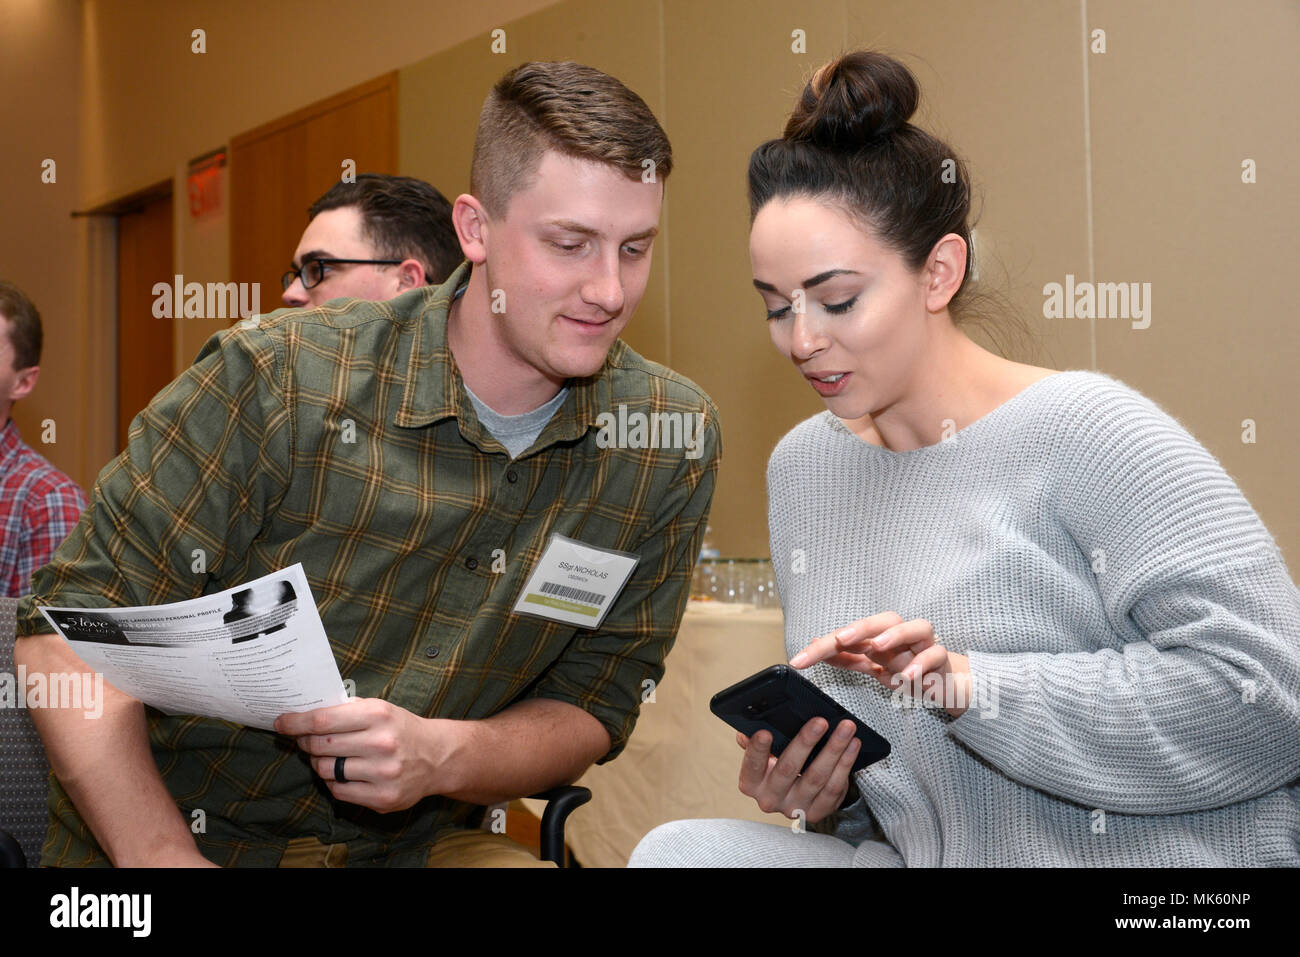 Staff Sgt Nicholas Osowick An Airmanigned To The 105th Airlift Wing Discusses Results With His Partner Of A 5 Love Languages Exercise During A Yellow